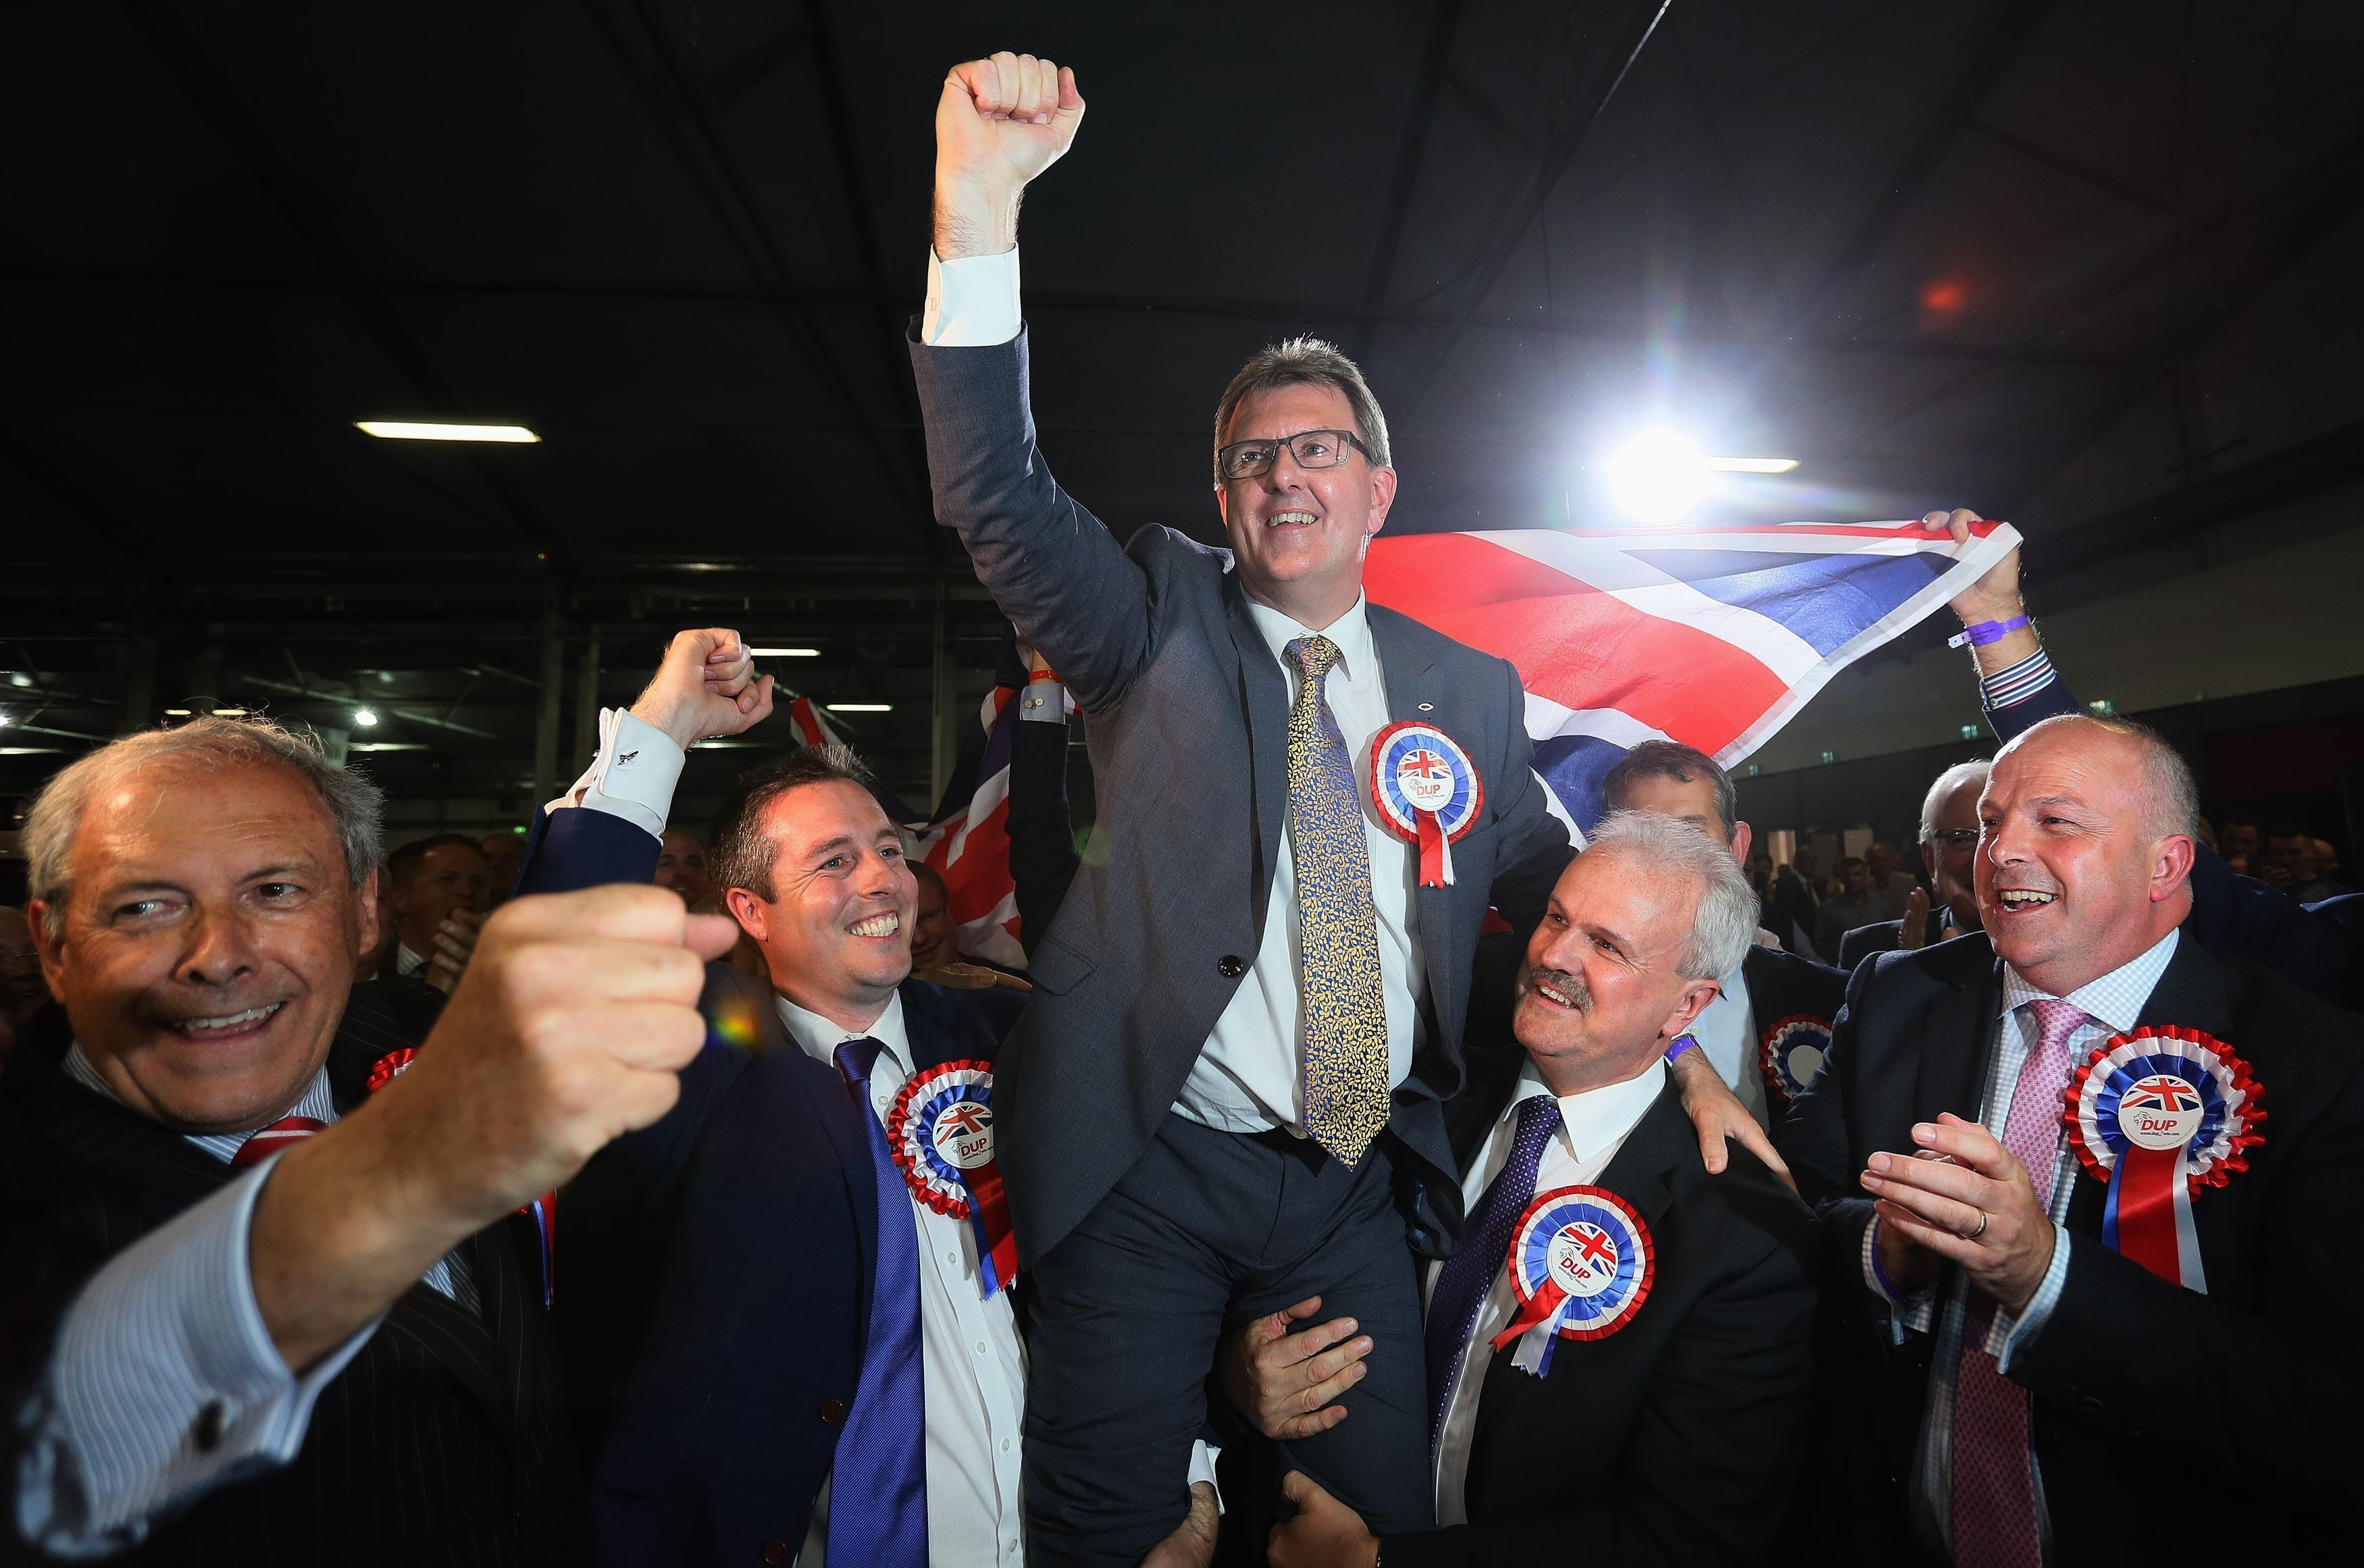 Sir Jeffrey Donaldson is the DUP's chief whip at